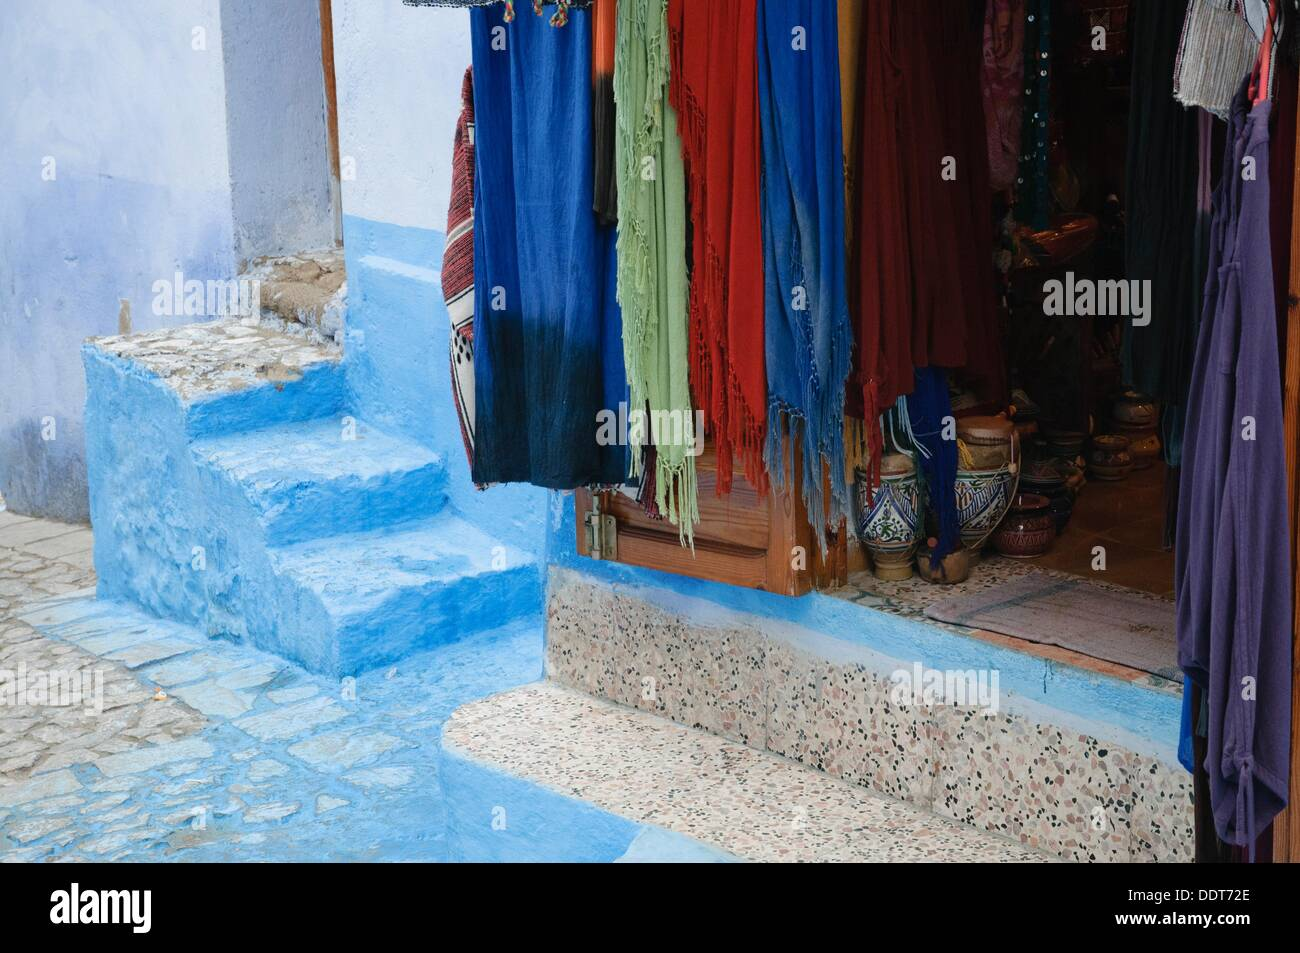 Scarves and other handcraft regional products on exhibit in a tourist shop in Chaouen, Morocco - Stock Image